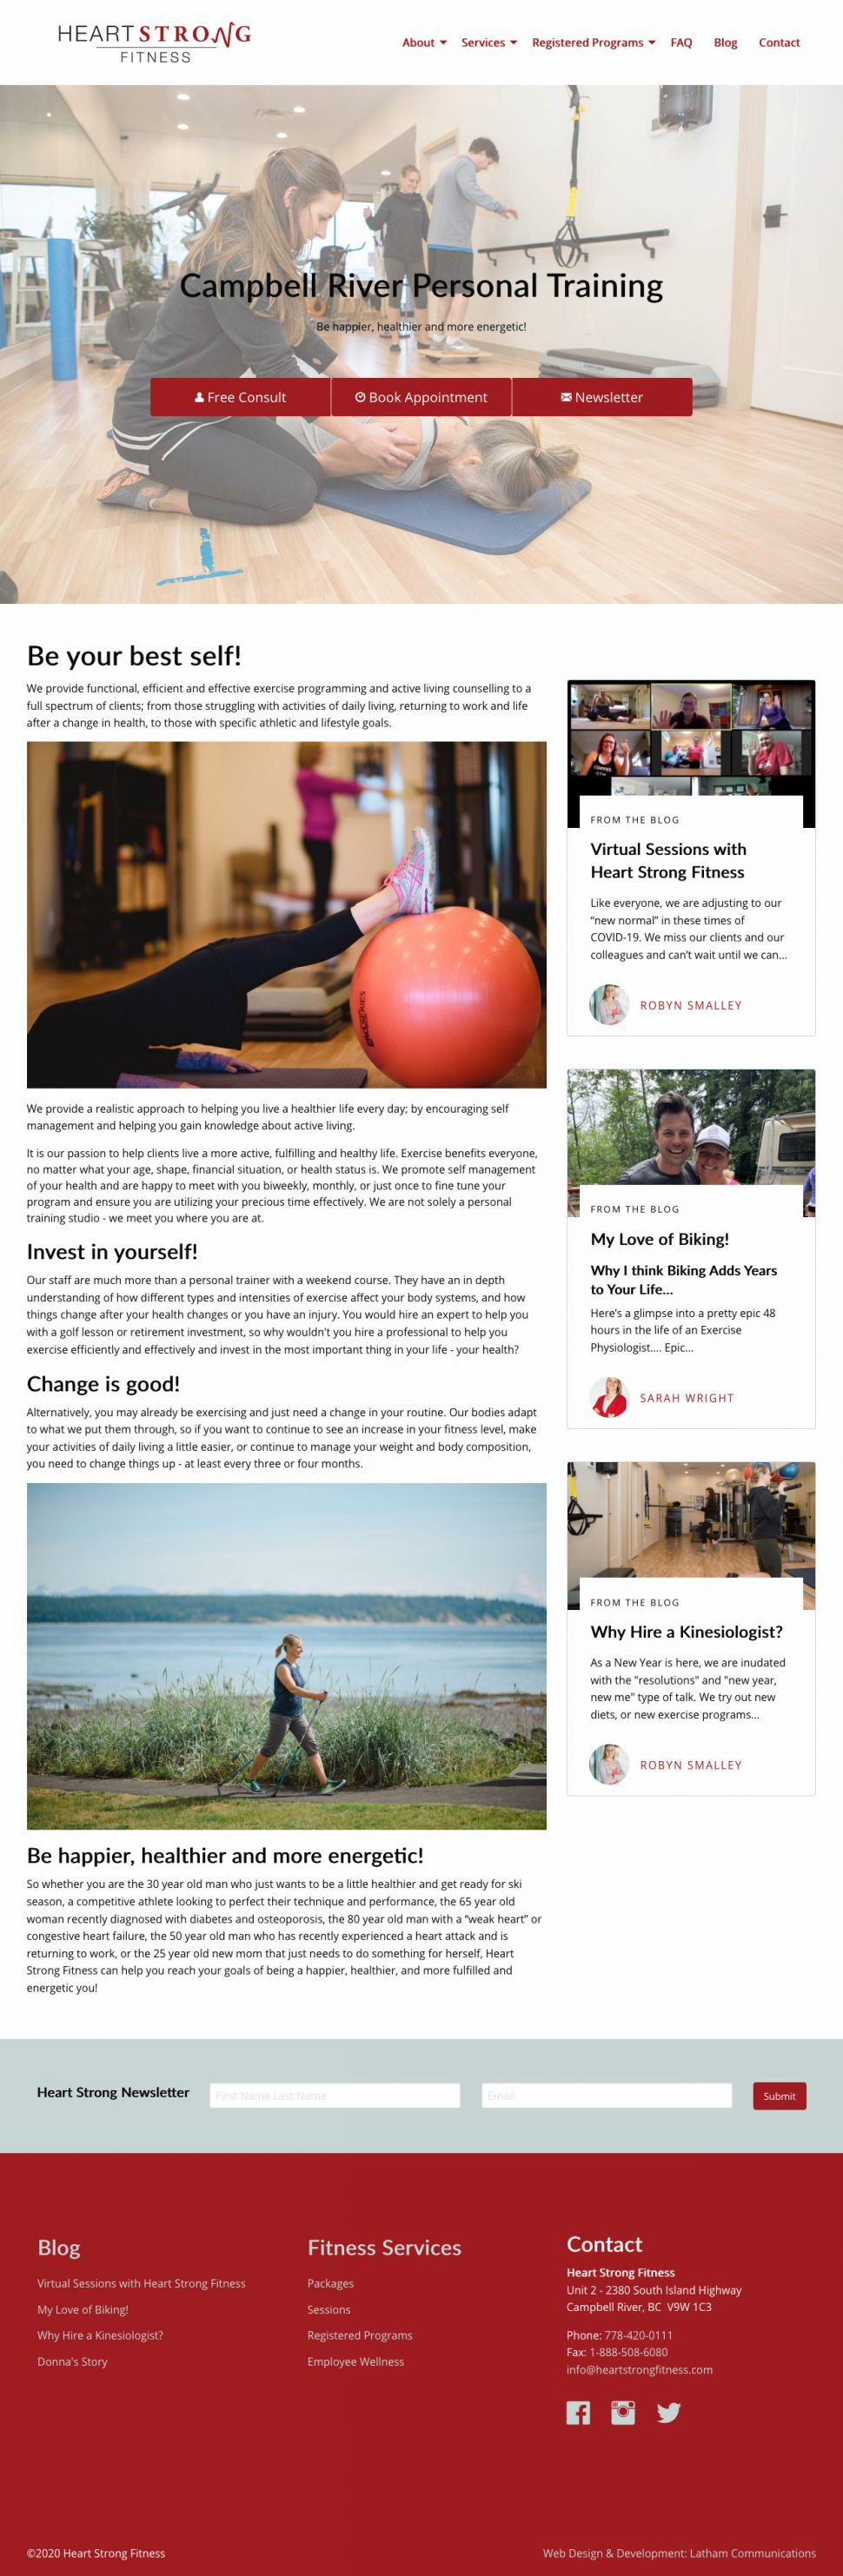 Screenshot of Heart Strong Fitness website home page.